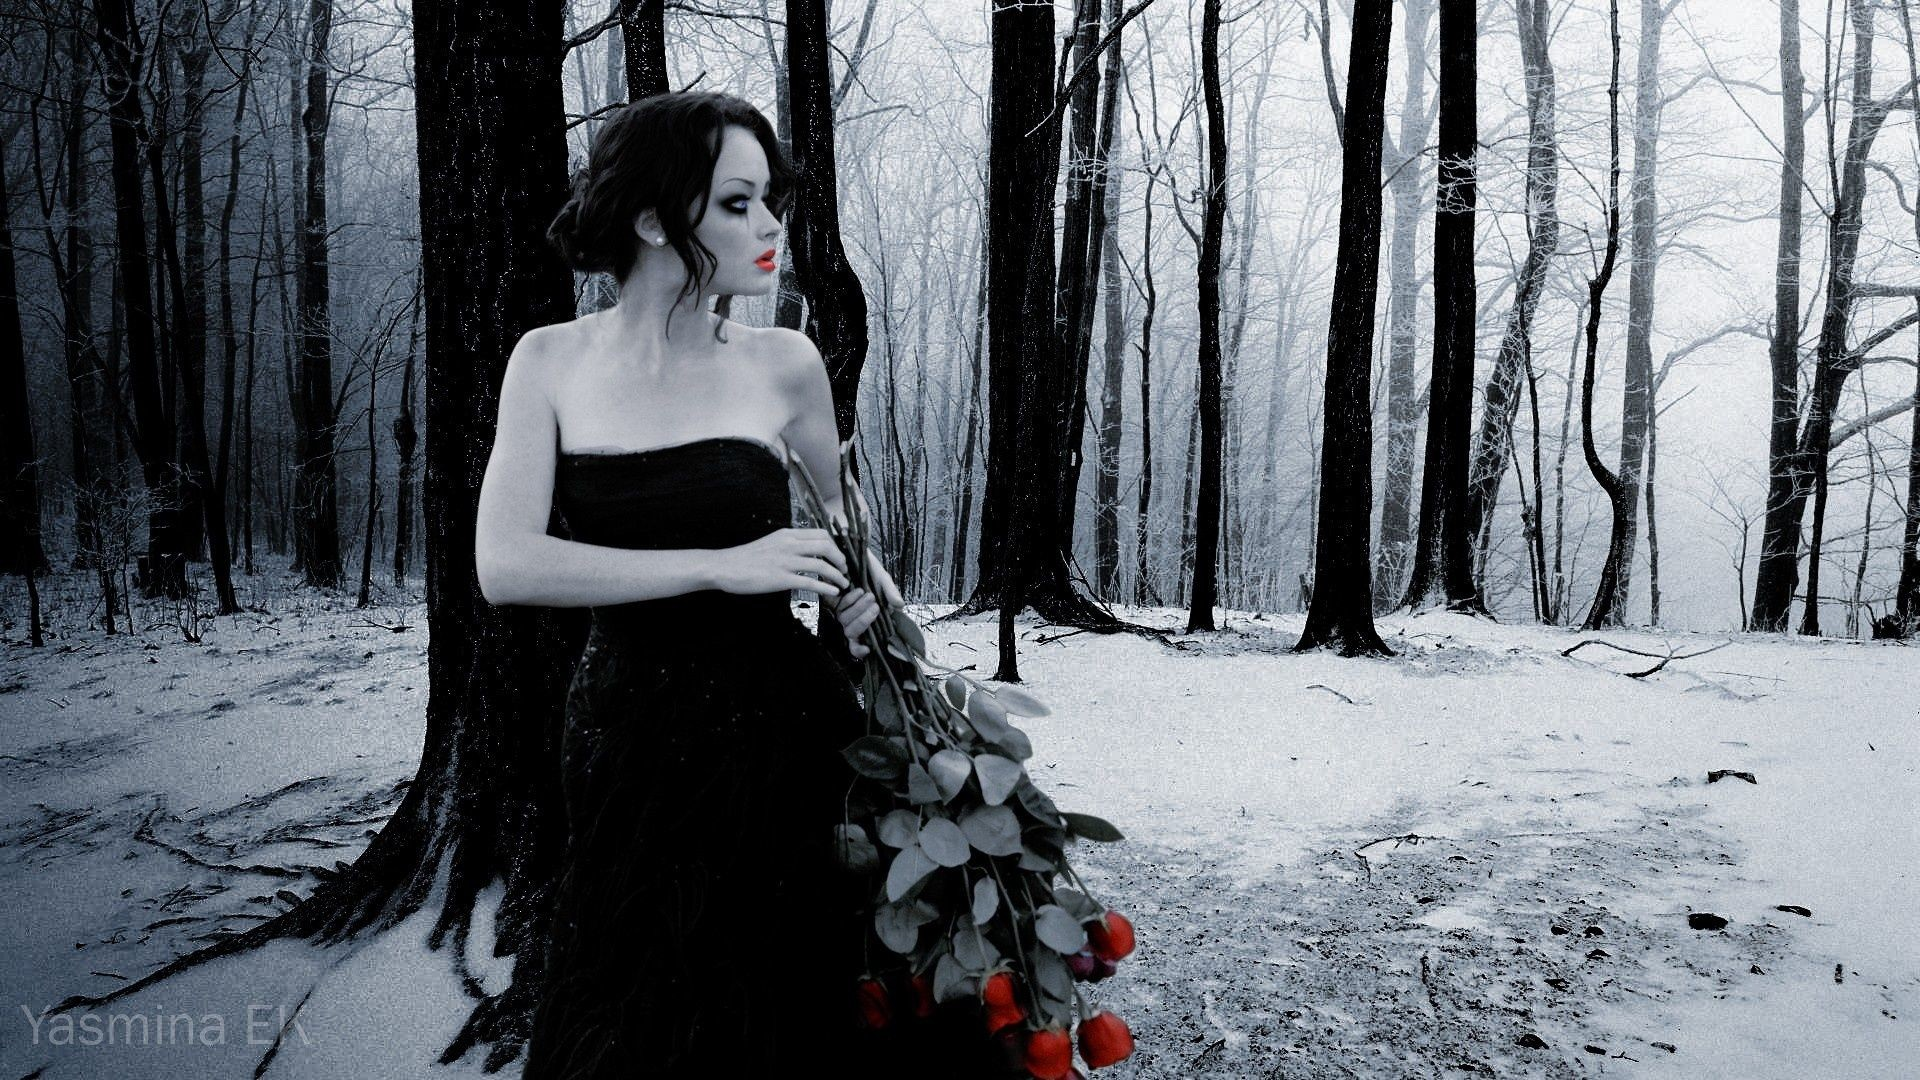 Res: 1920x1080, Gothic Wallpapers HD | Wallpapers, Backgrounds, Images, Art Photos.